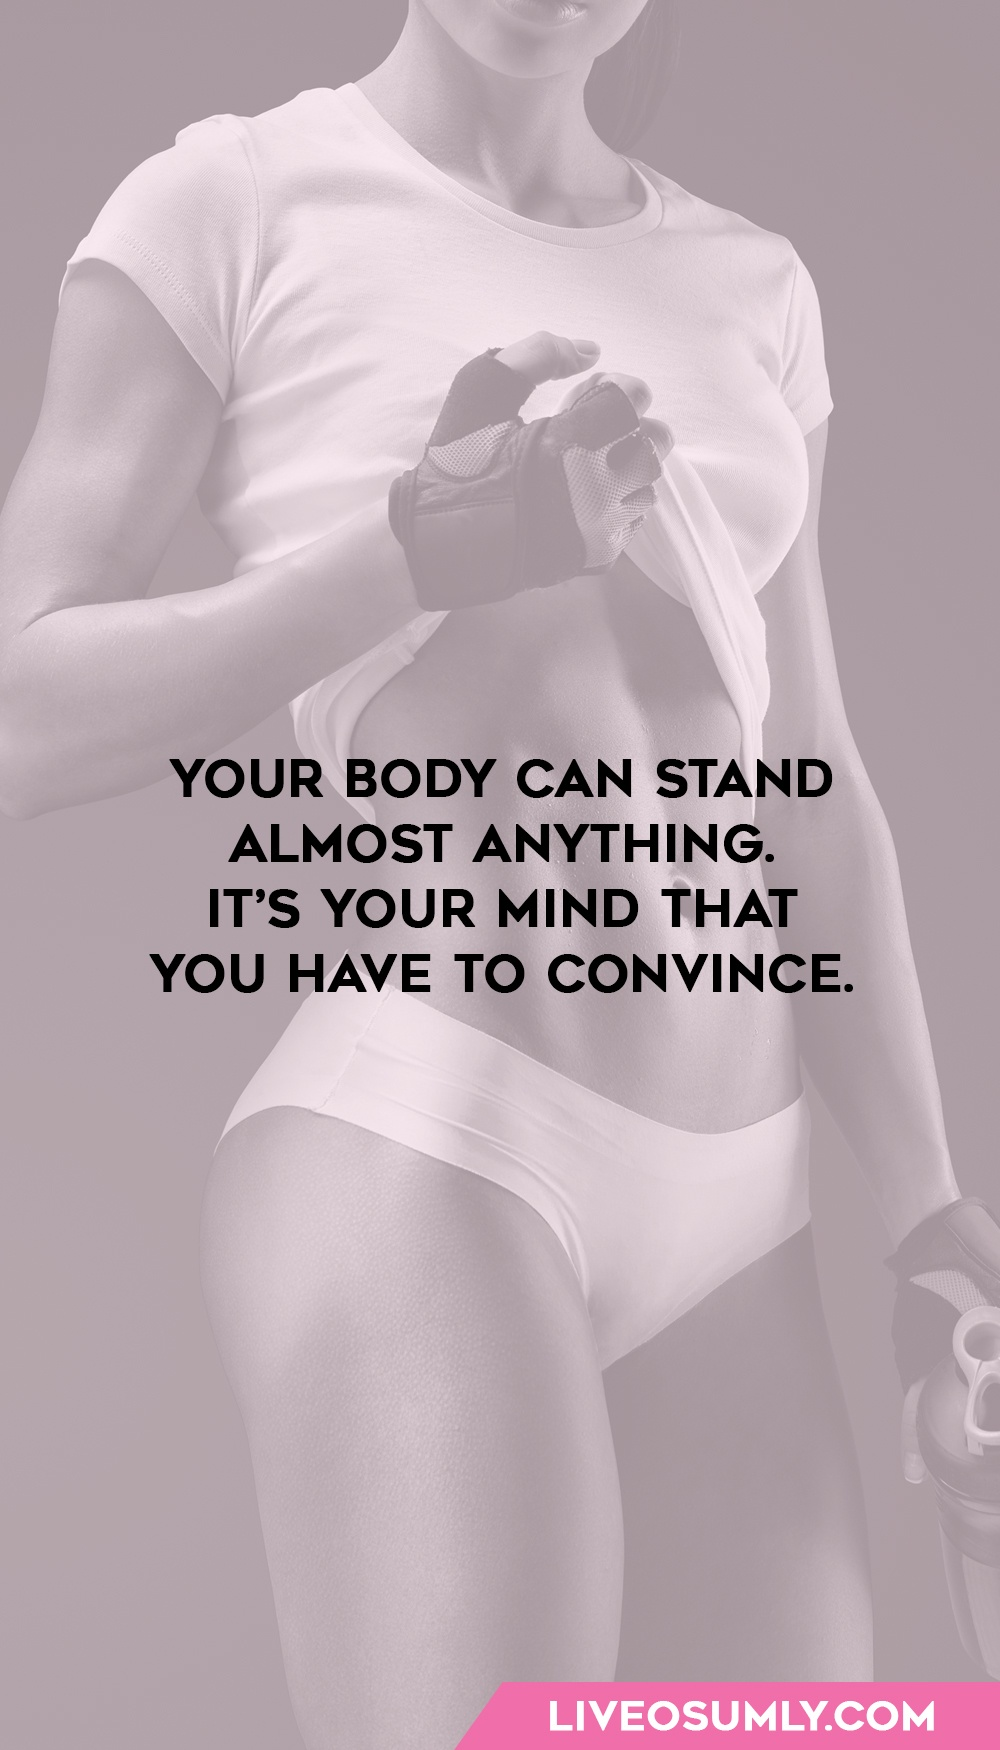 2. Fitness Motivation Quotes